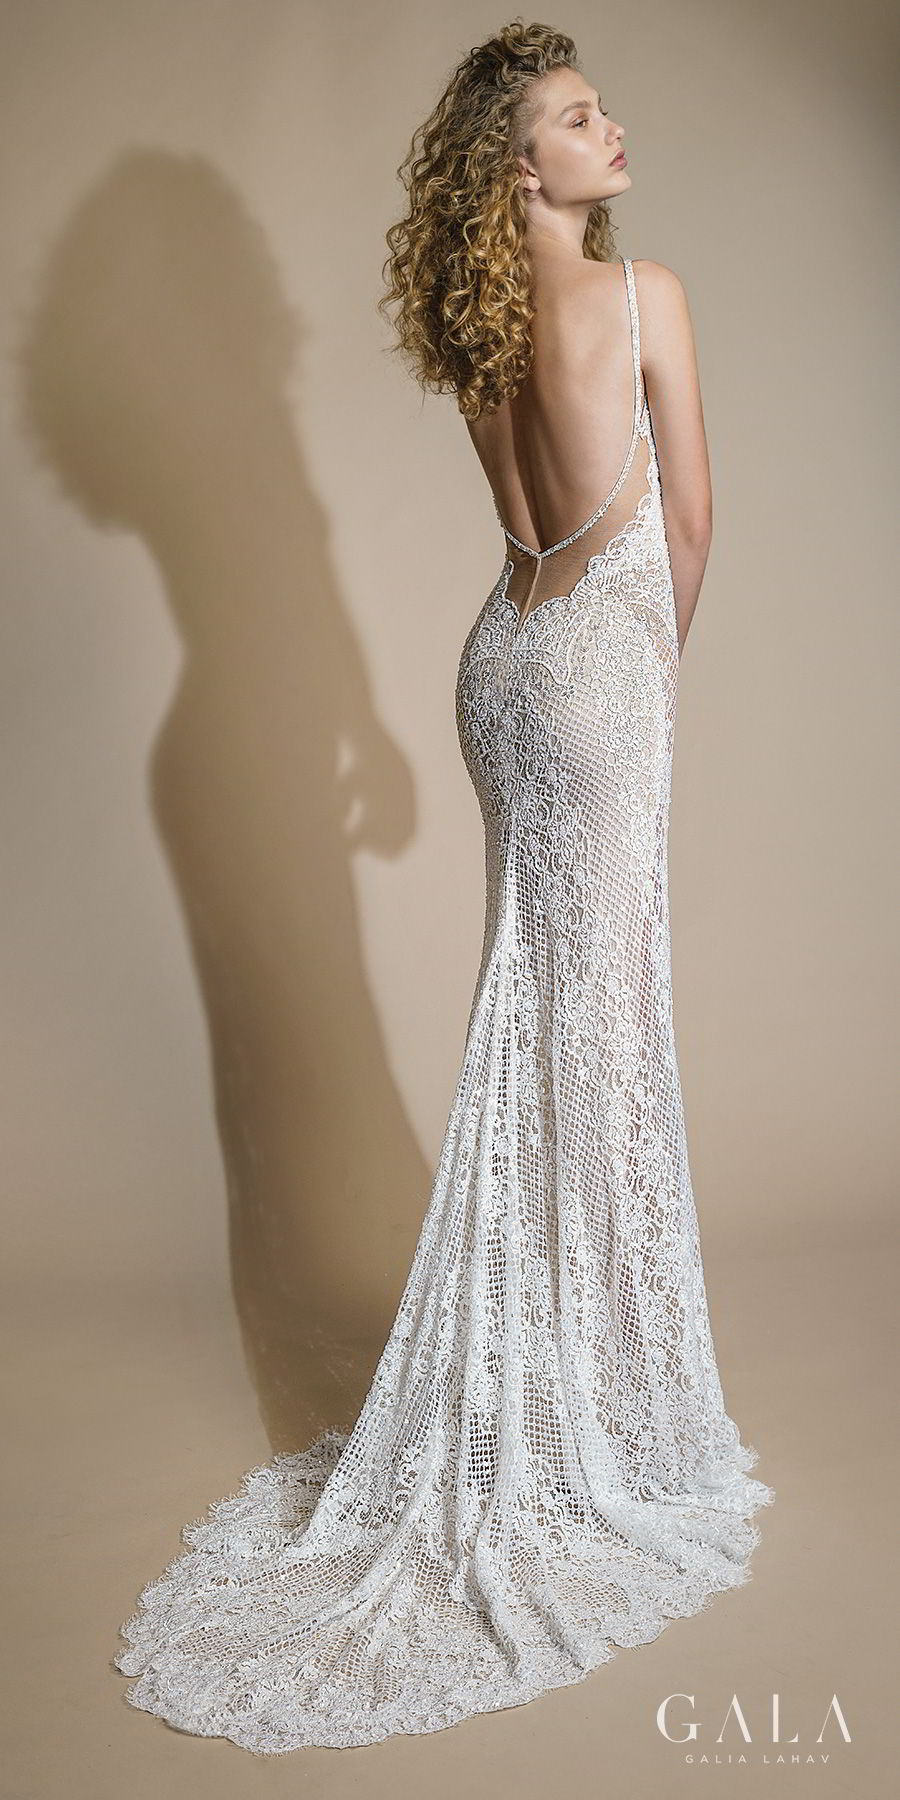 galia lahav gala 2019 bridal thin strap deep plunging v neckline full embellishment sexy elegant fit and flare sheath wedding dress low open back sweep train (105) bv